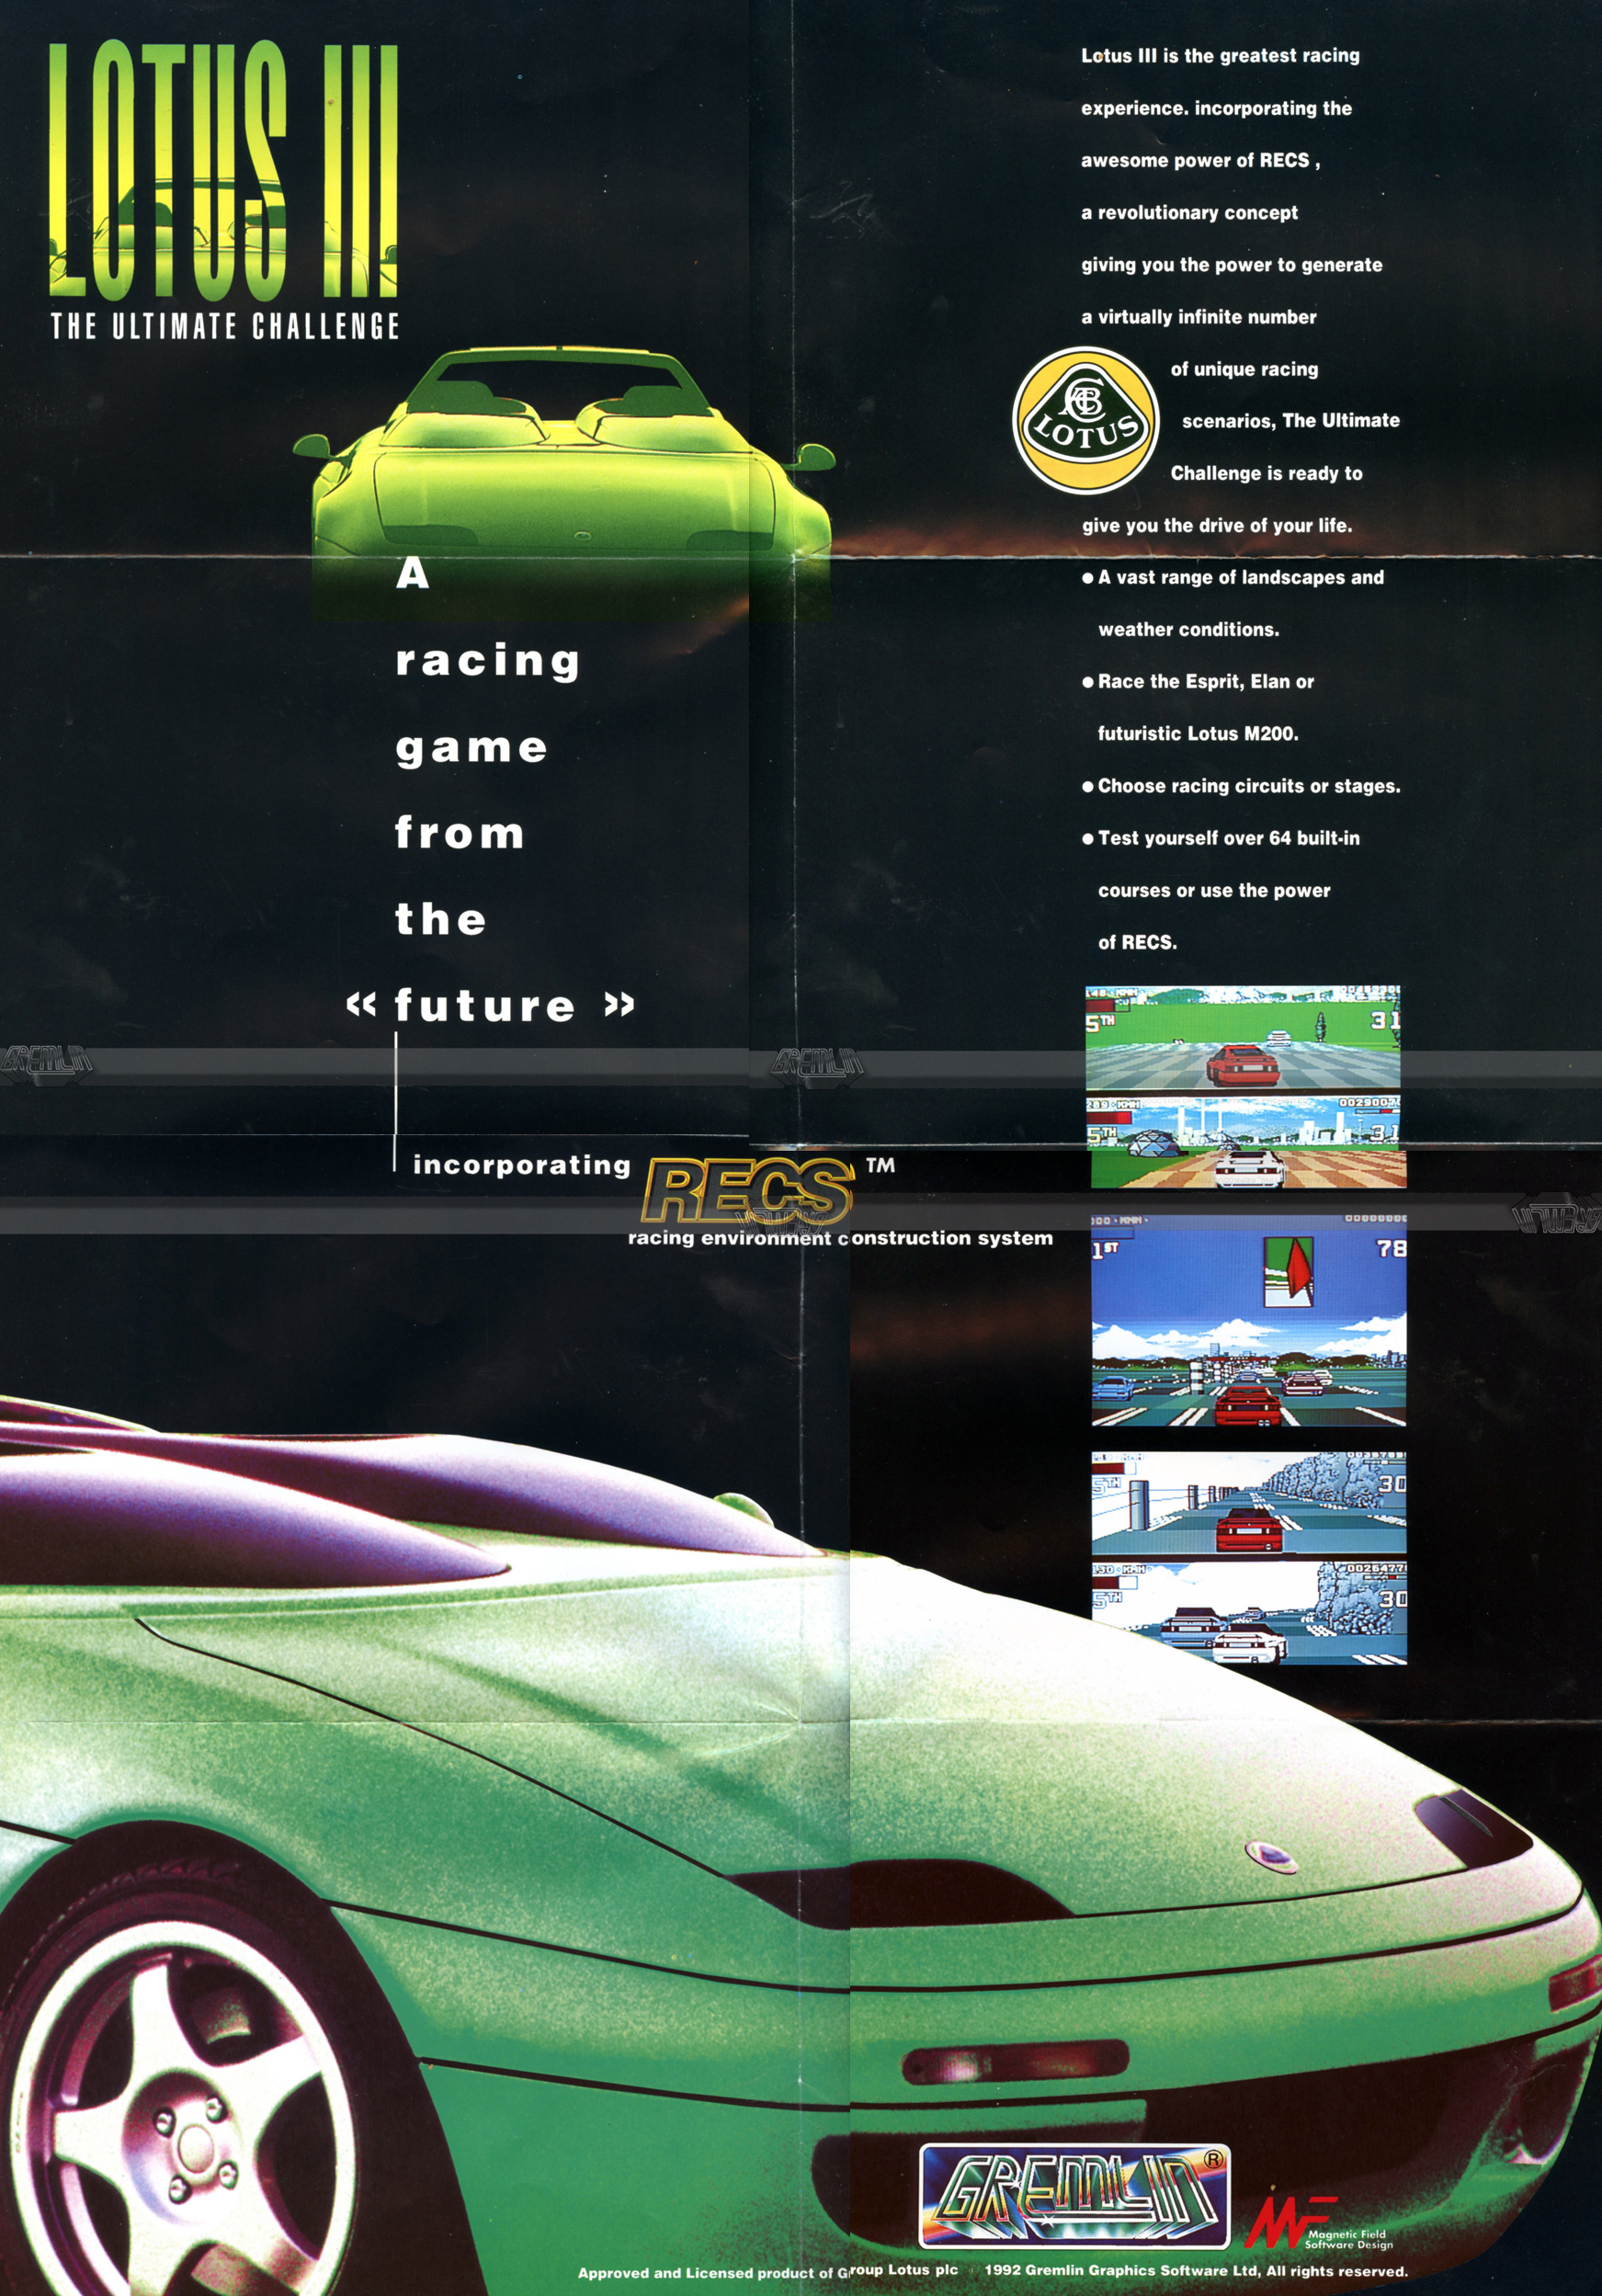 Lotus III: Ultimate Challenge Poster